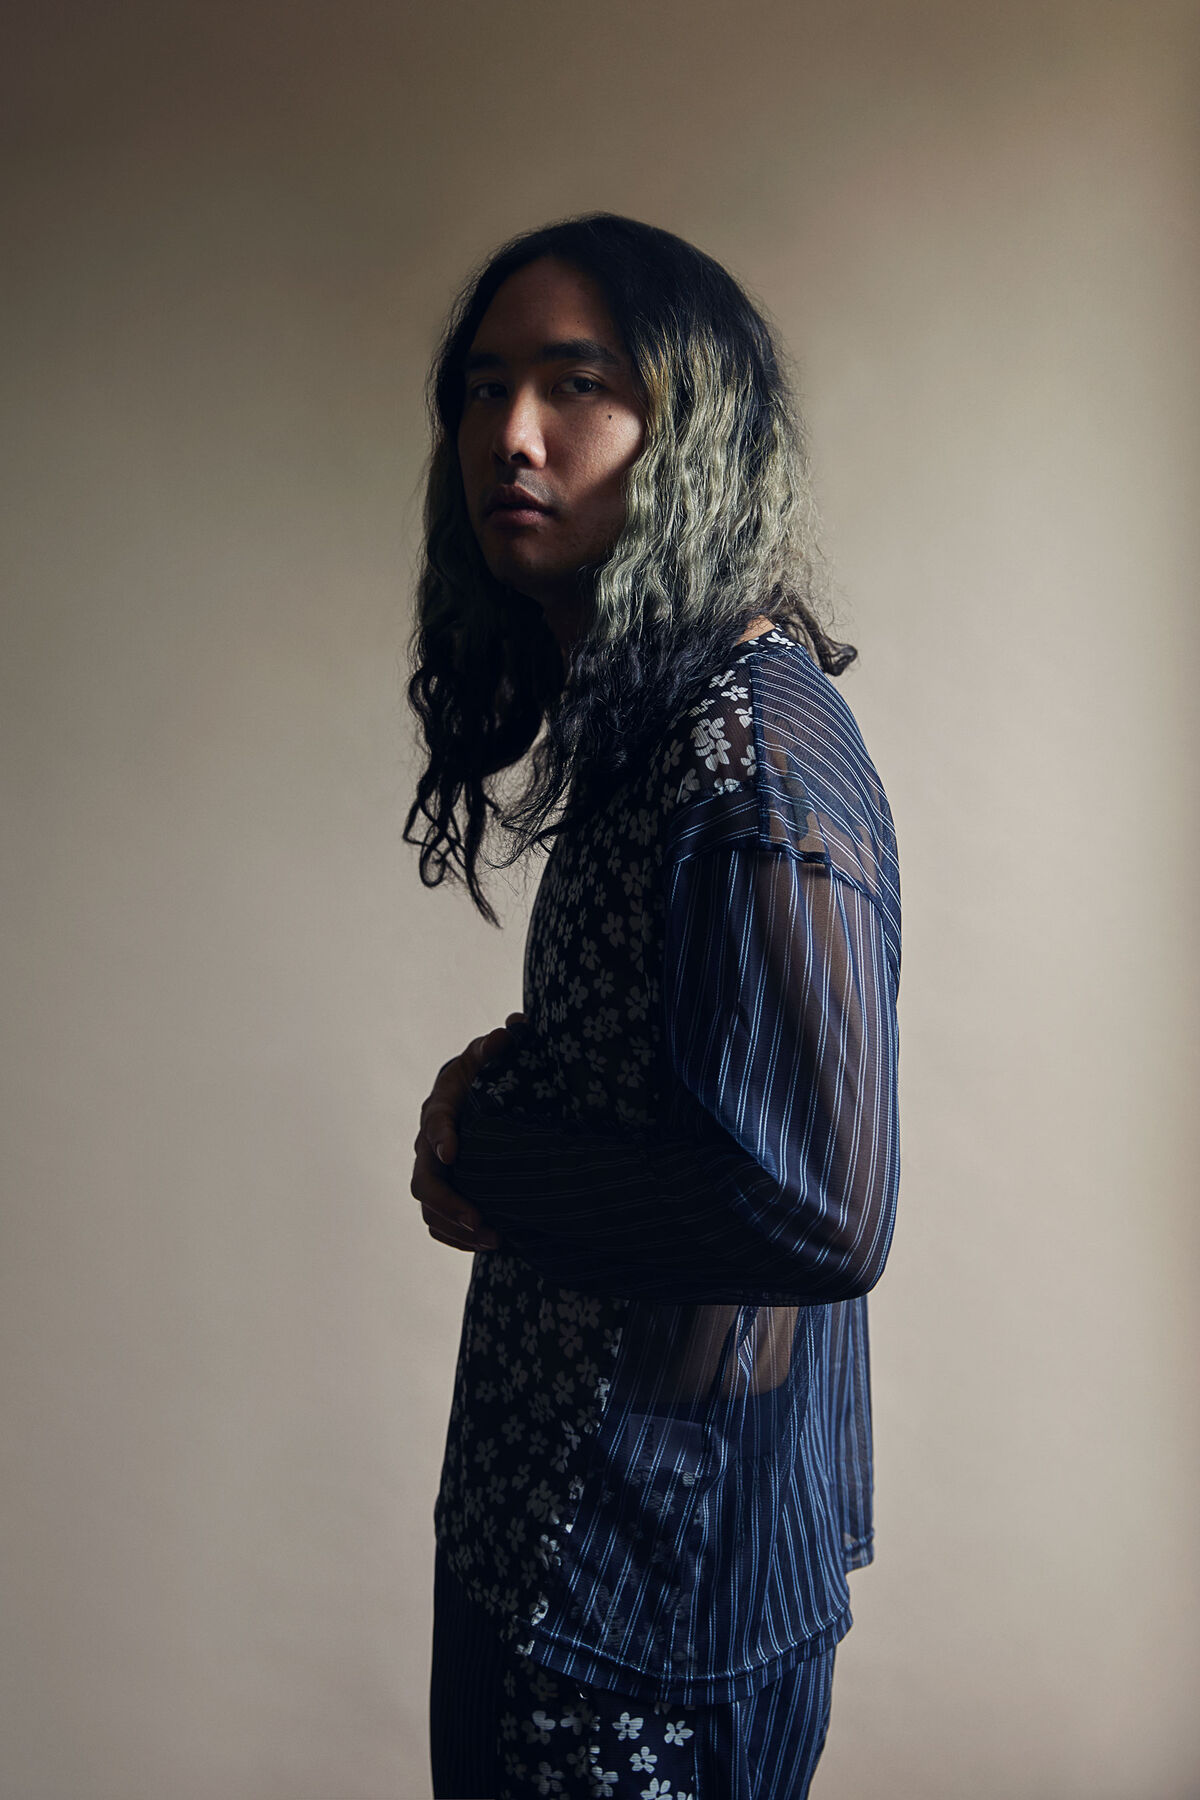 Portraits of Korakrit Arunanondchai by Lelanie Foster for Artsy.